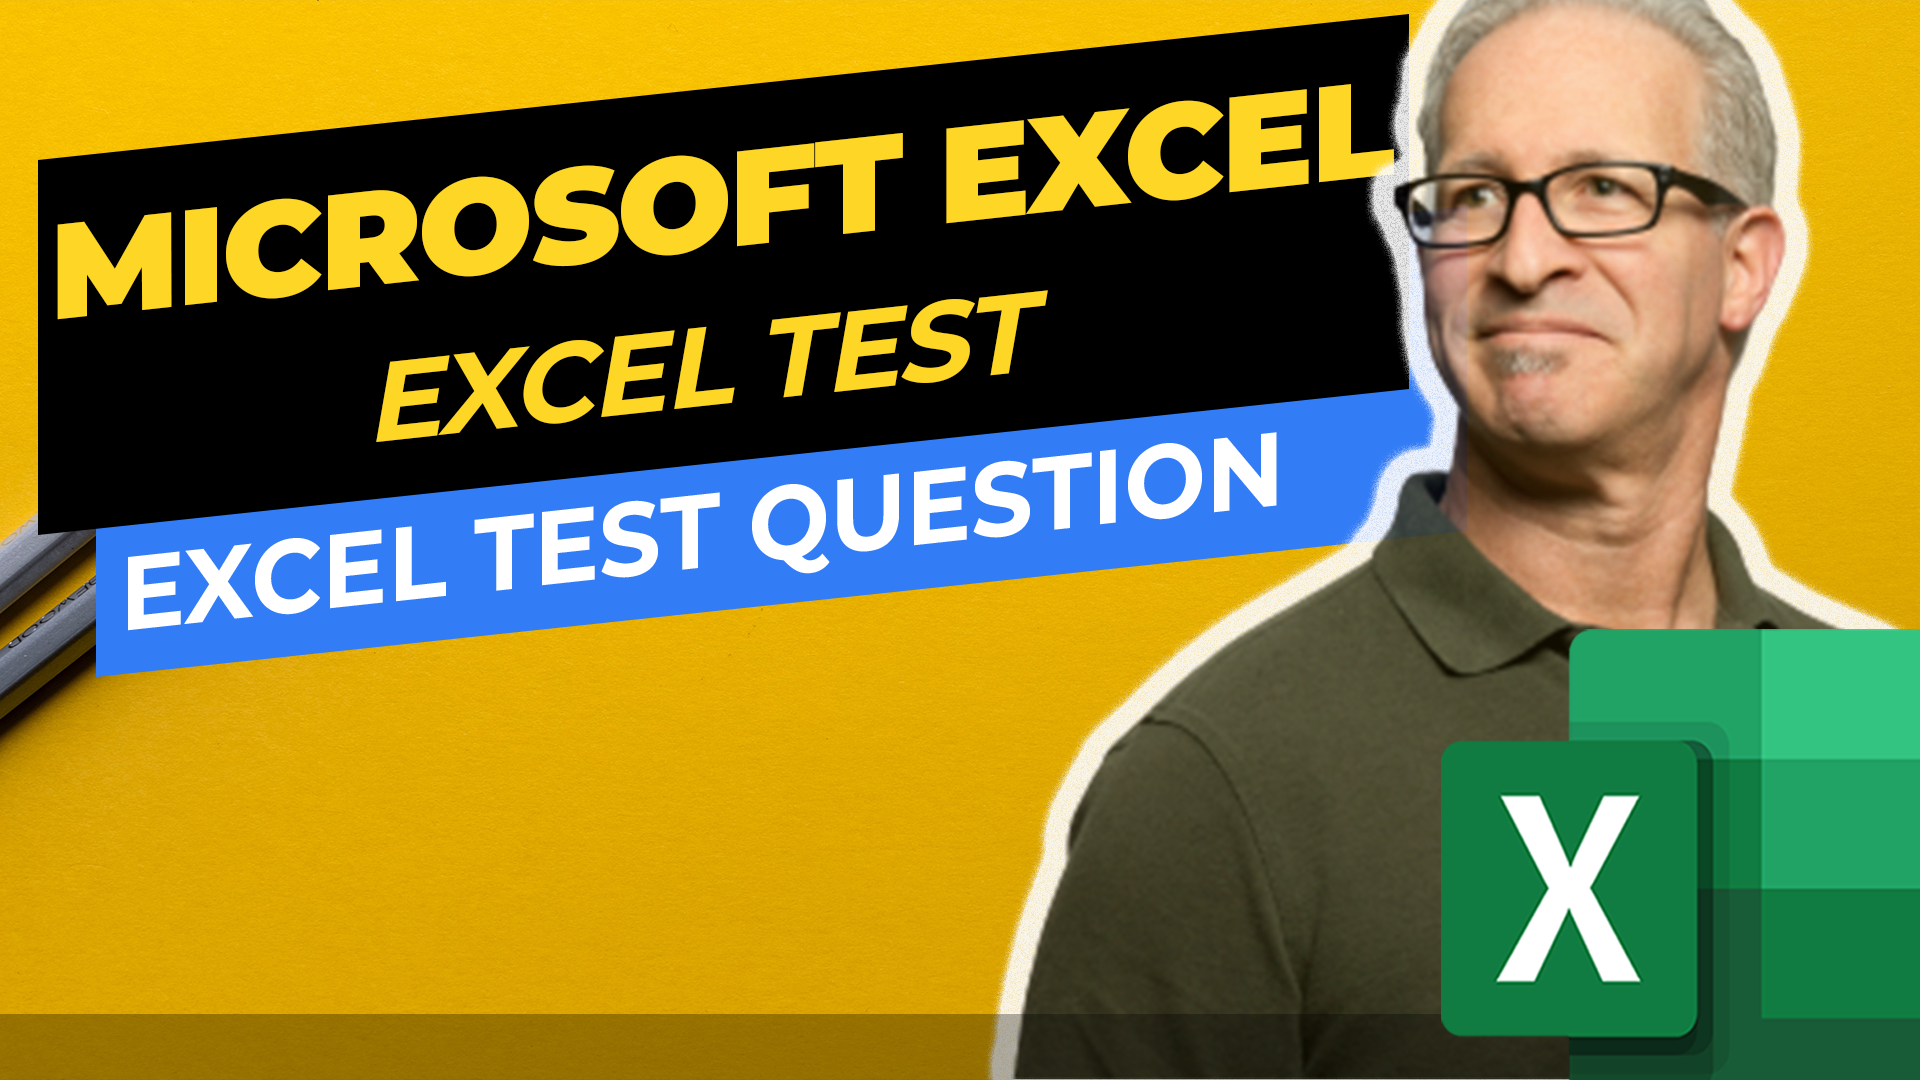 Test Excel Knowledge - Excel Test Question - how to configure Excel values